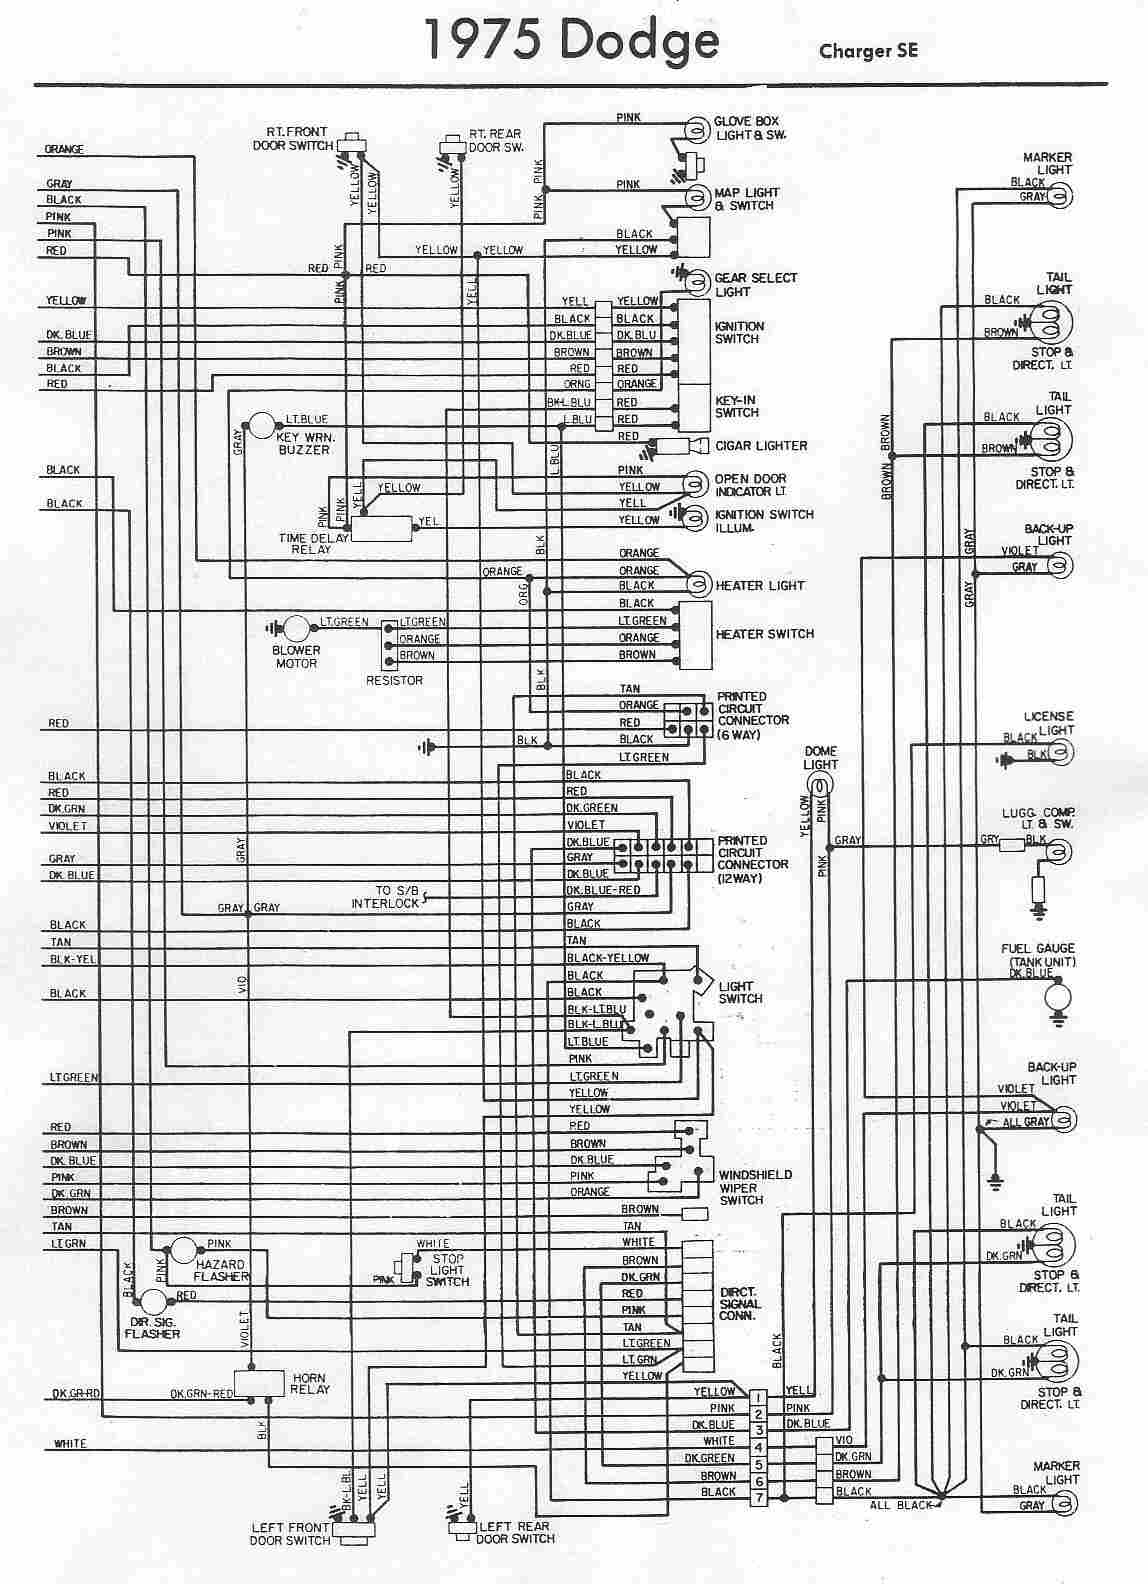 2015 dodge dart wiring diagram [ 1148 x 1584 Pixel ]